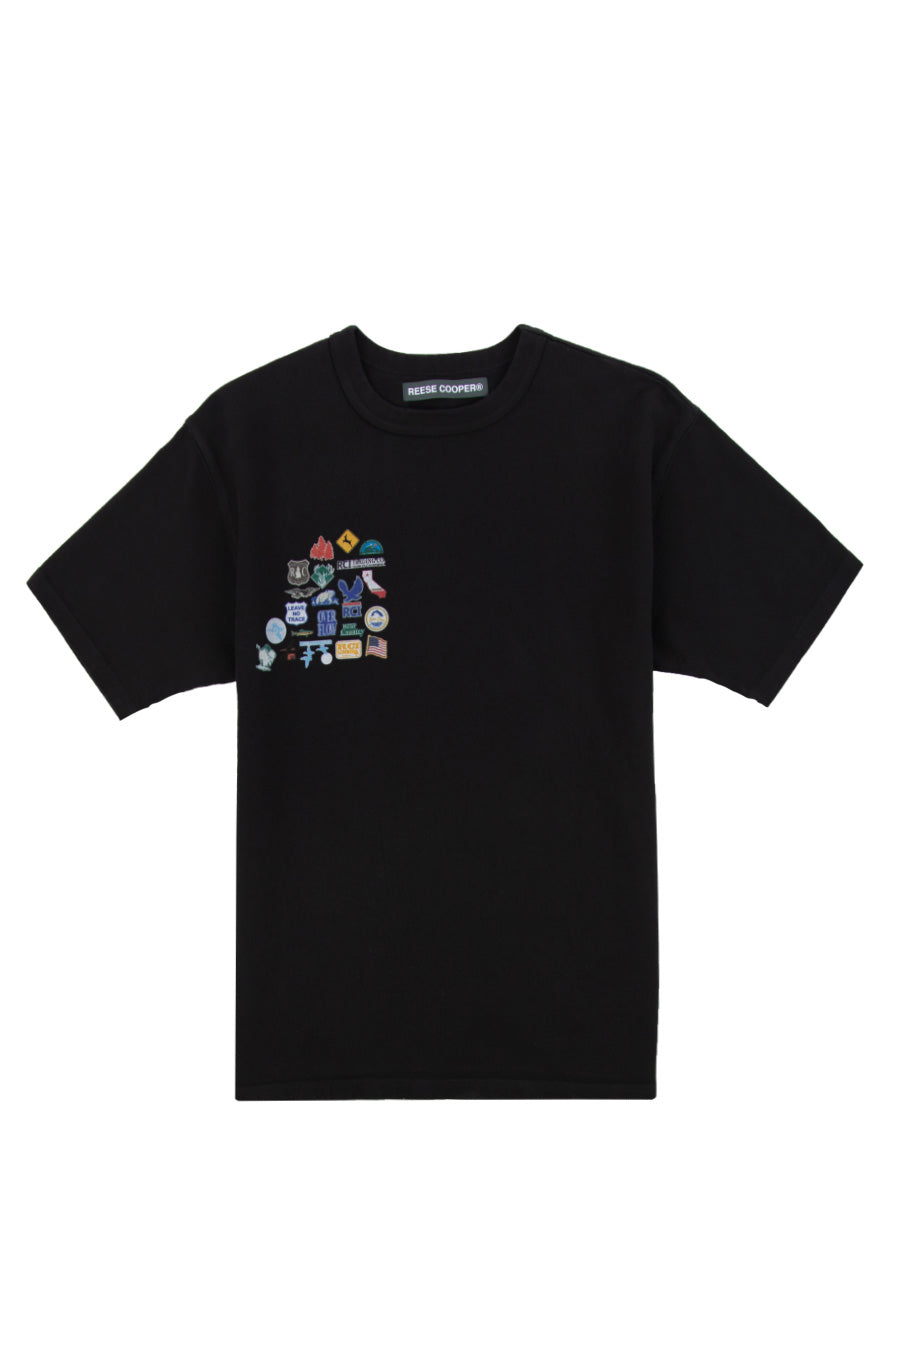 eese Cooper - Black Pins T-Shirt | 1032 SPACE